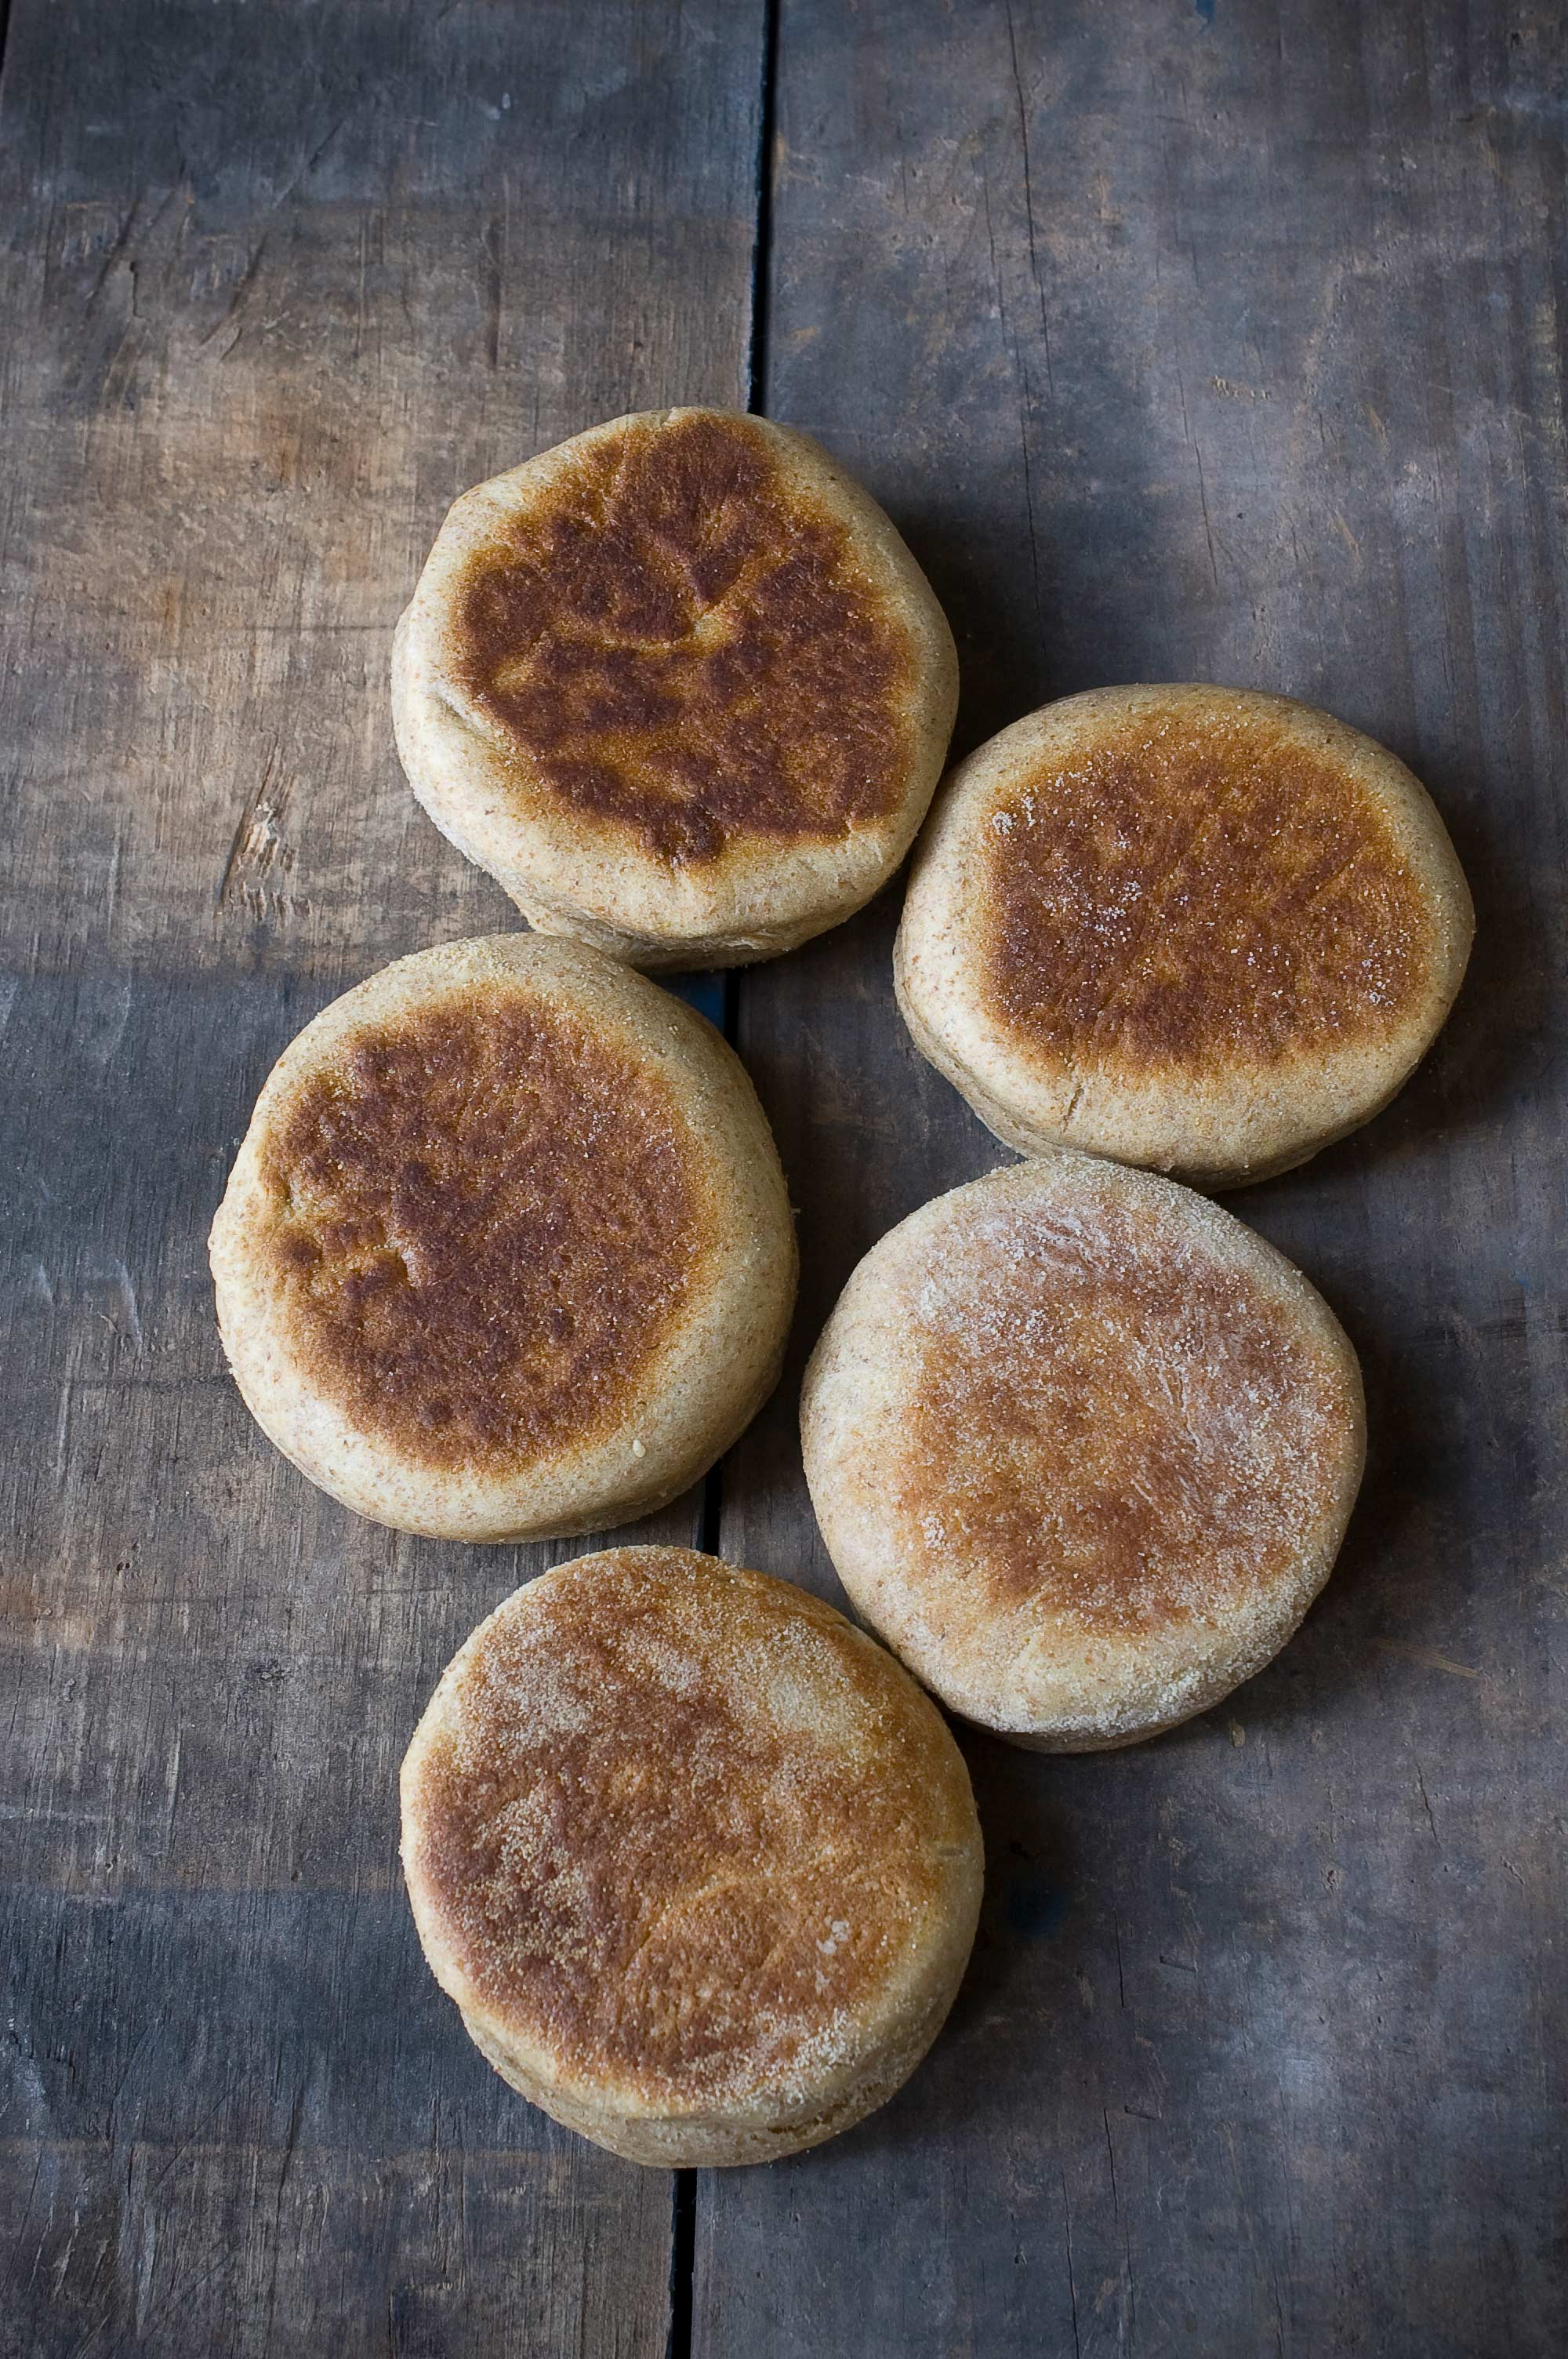 A photo of whole wheat english muffins.